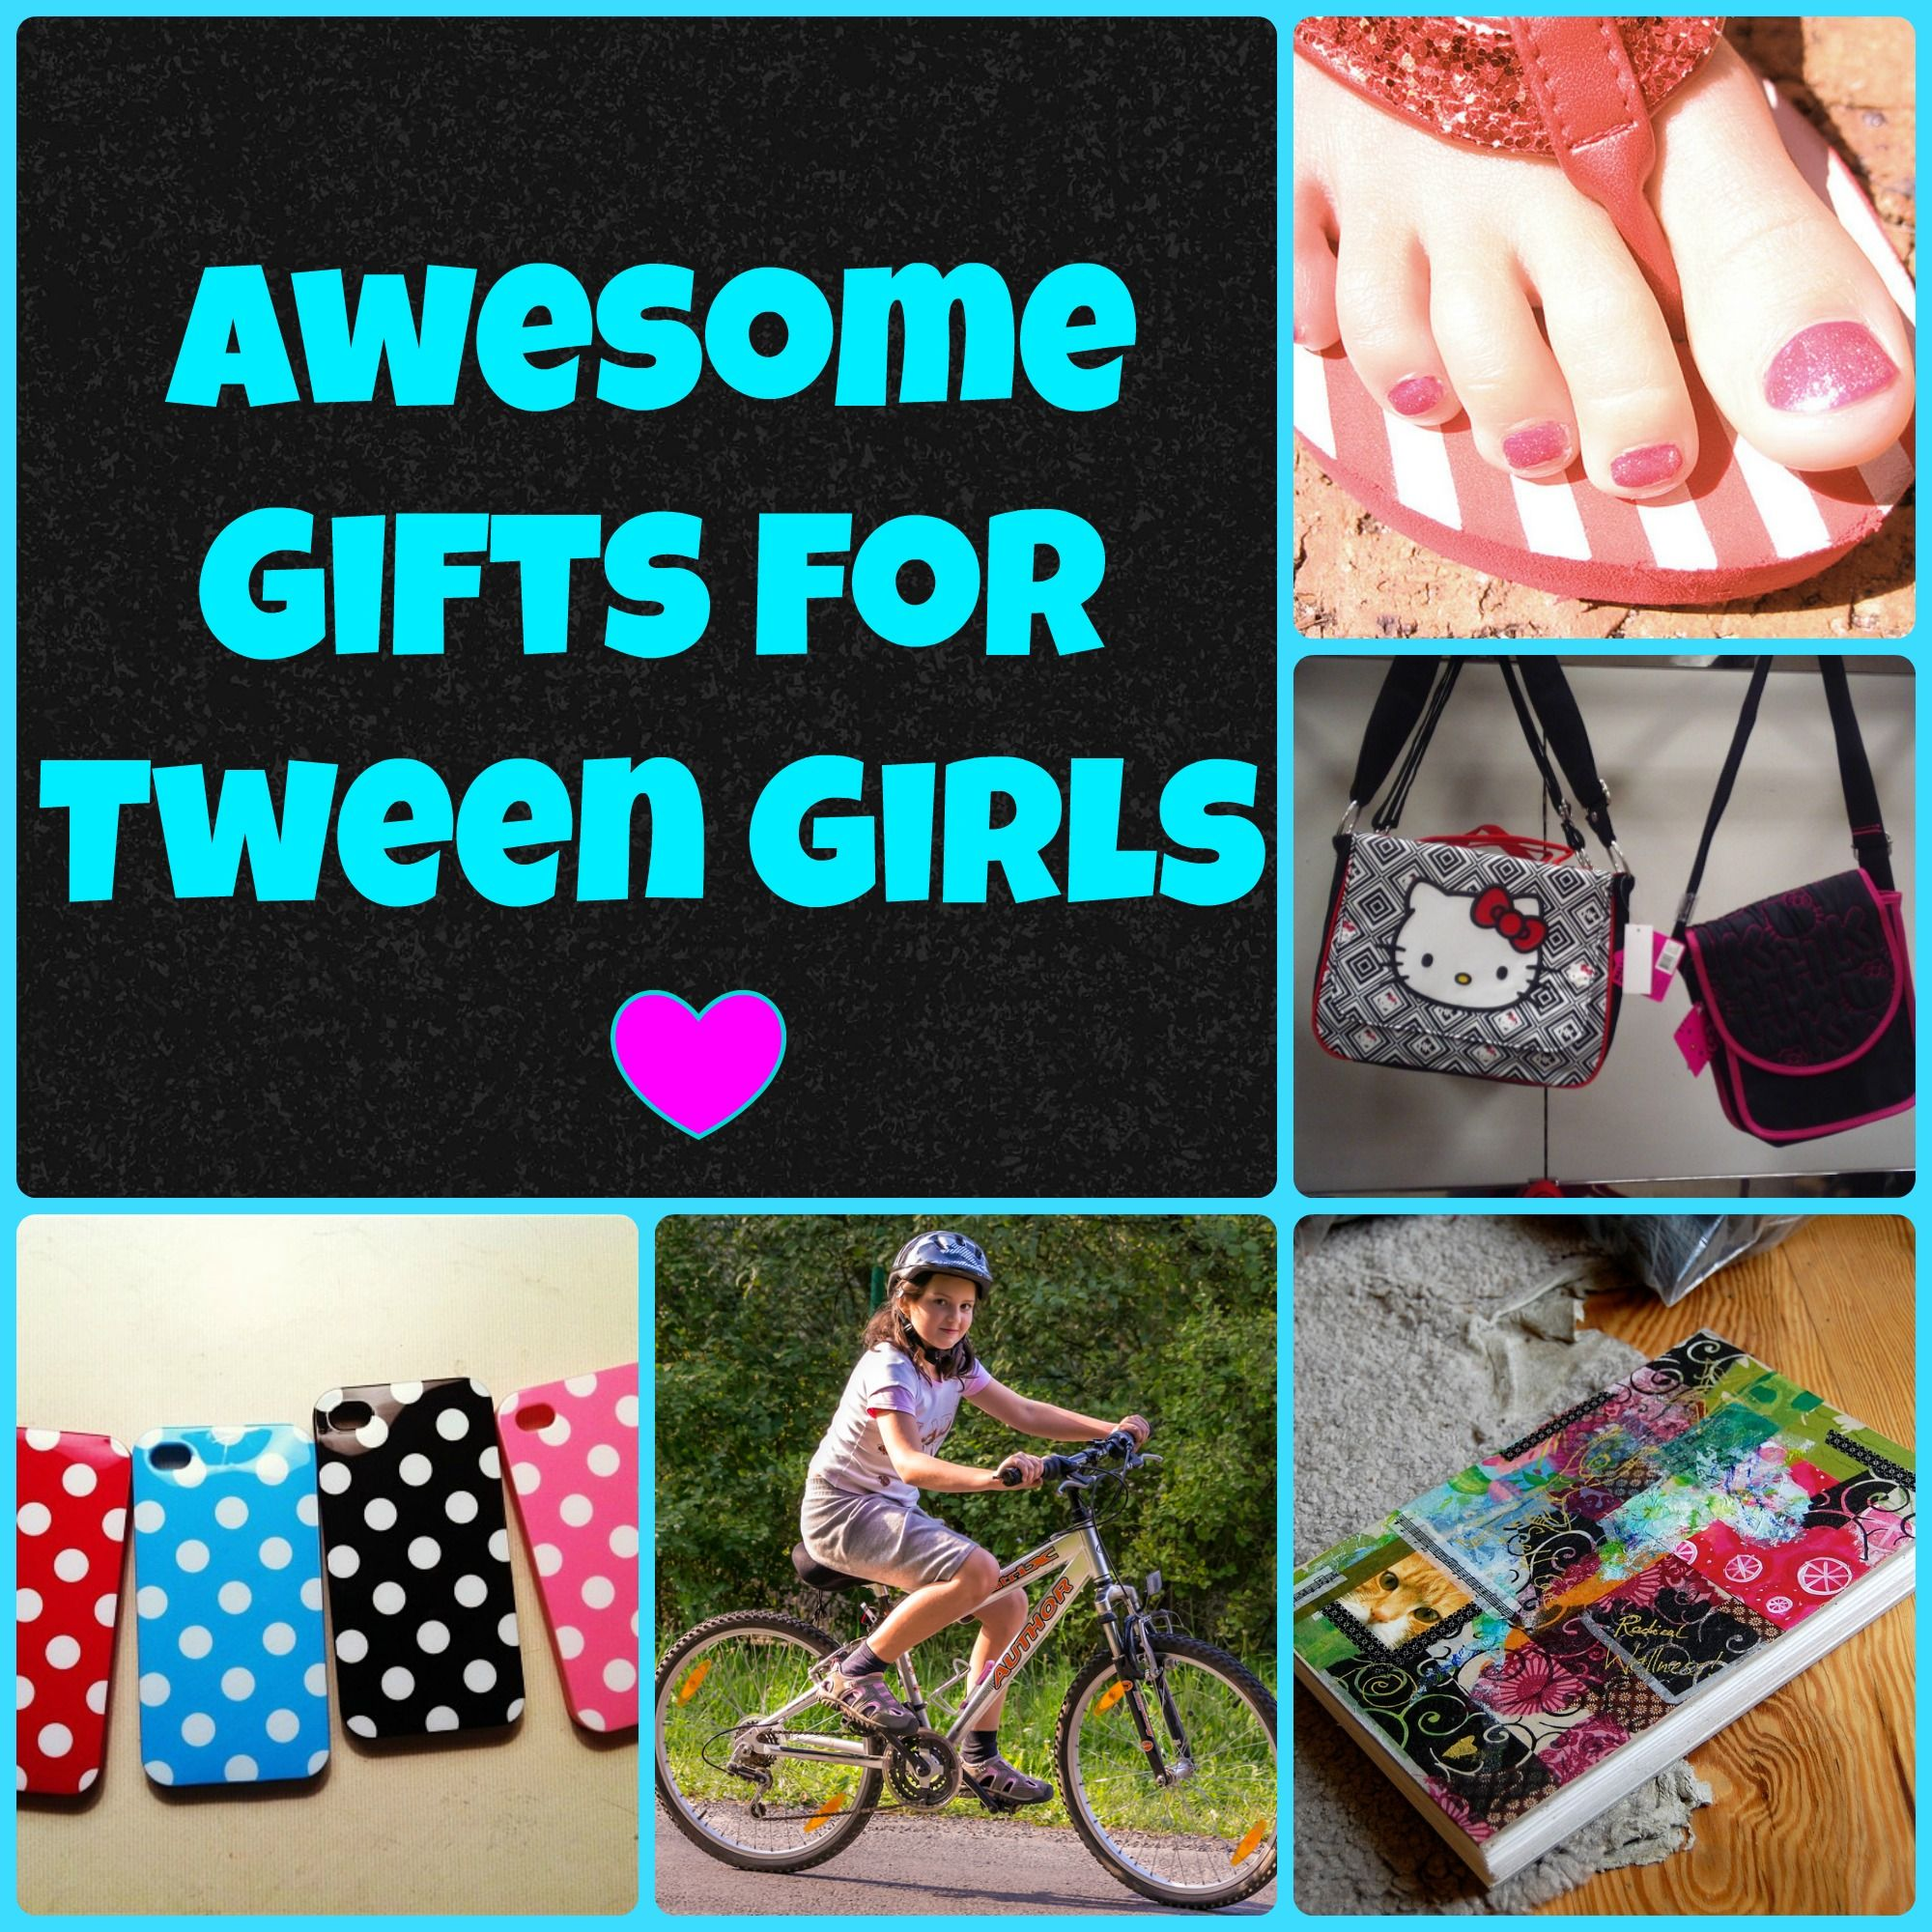 Gifts for Tween Girls (Ages 10 - 12) | Tween gifts, Tween girl gifts, Diy crafts for girls